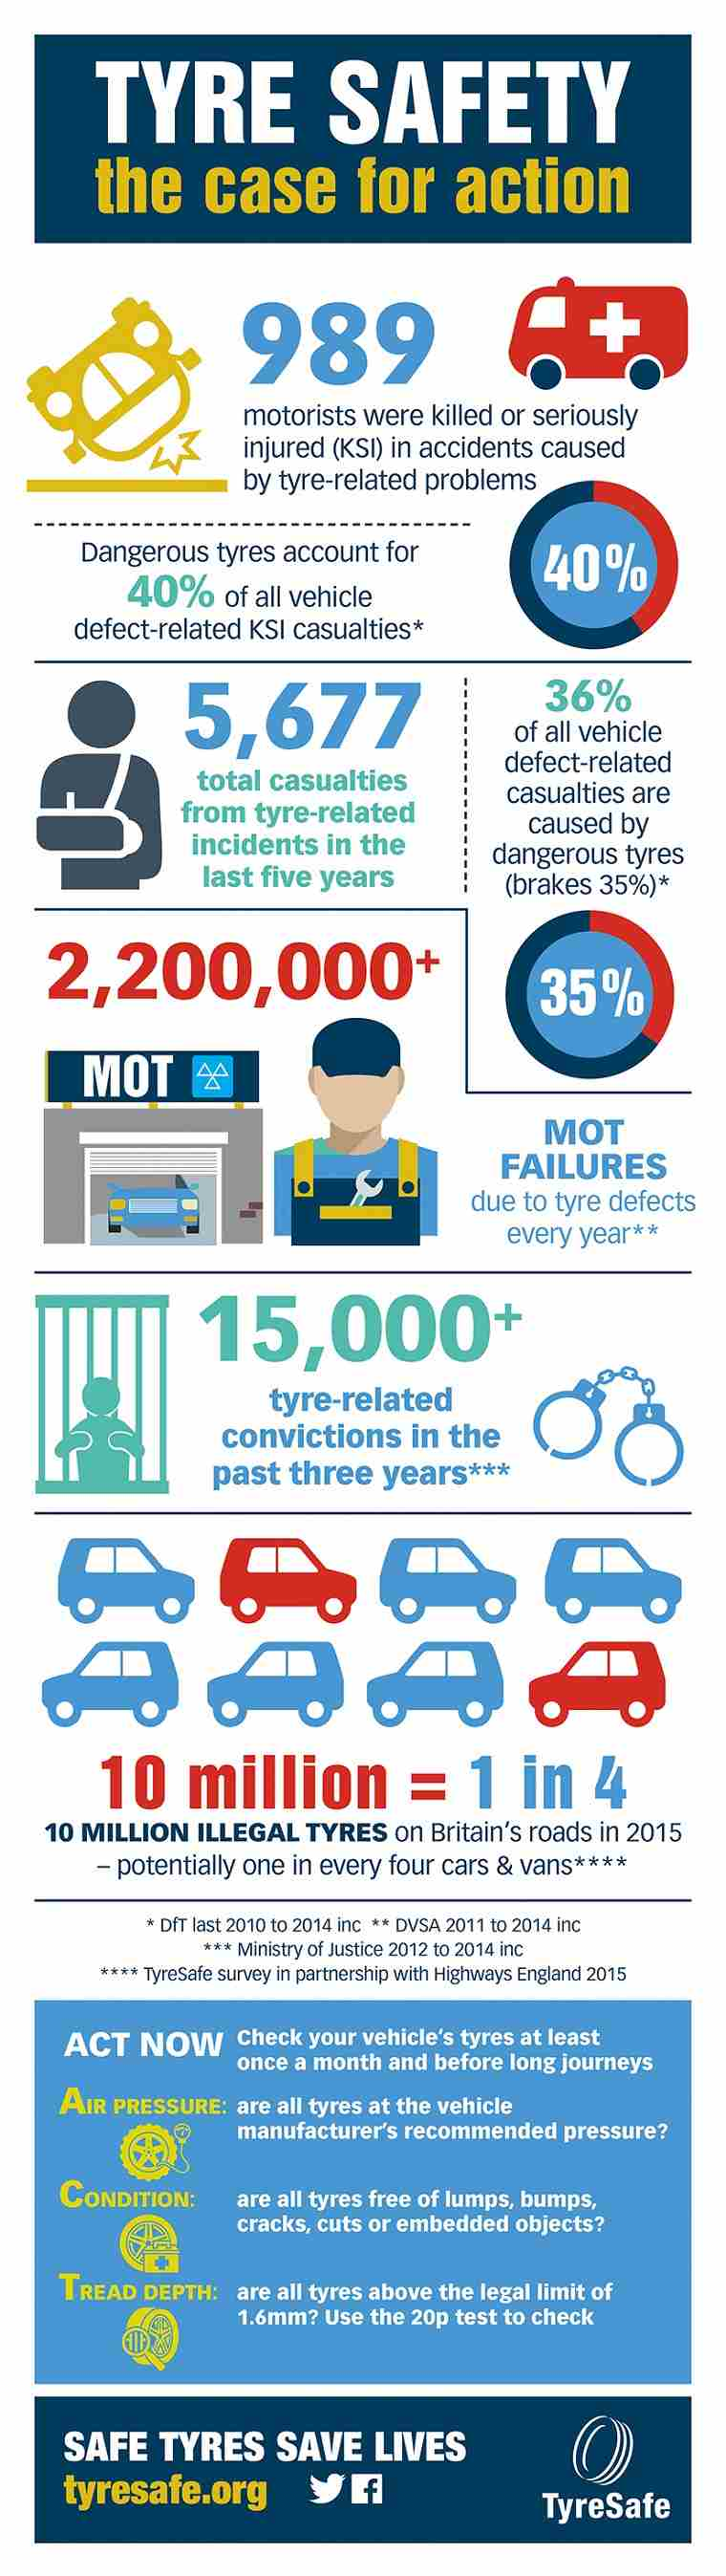 TyreSafe Stats Infographic